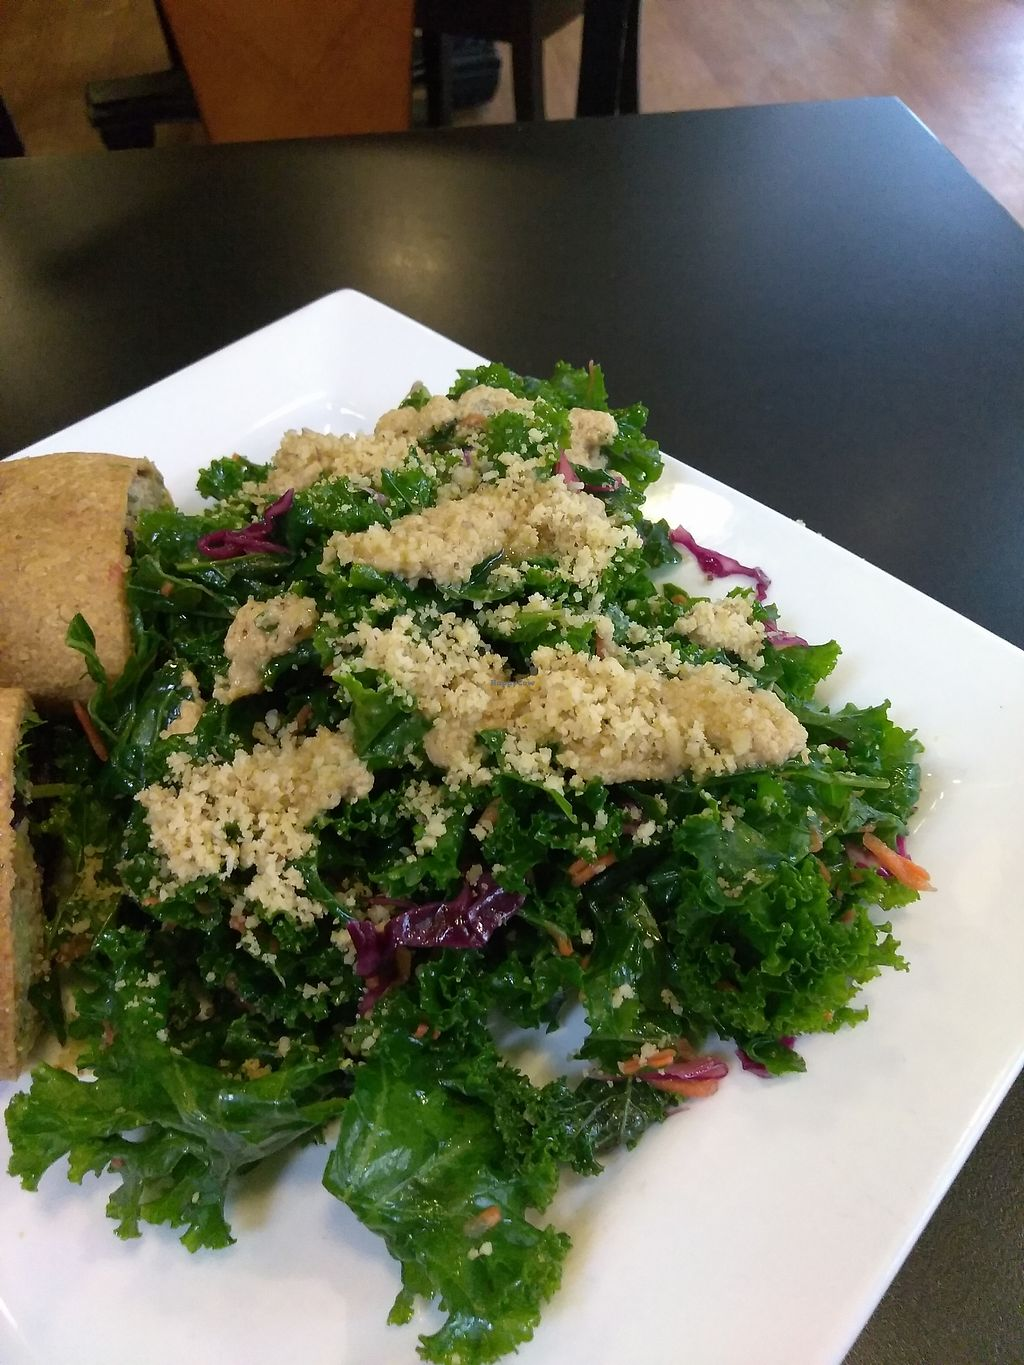 """Photo of Good Life Cafe  by <a href=""""/members/profile/maidenthesouth"""">maidenthesouth</a> <br/>Kale salad <br/> September 24, 2017  - <a href='/contact/abuse/image/26543/308021'>Report</a>"""